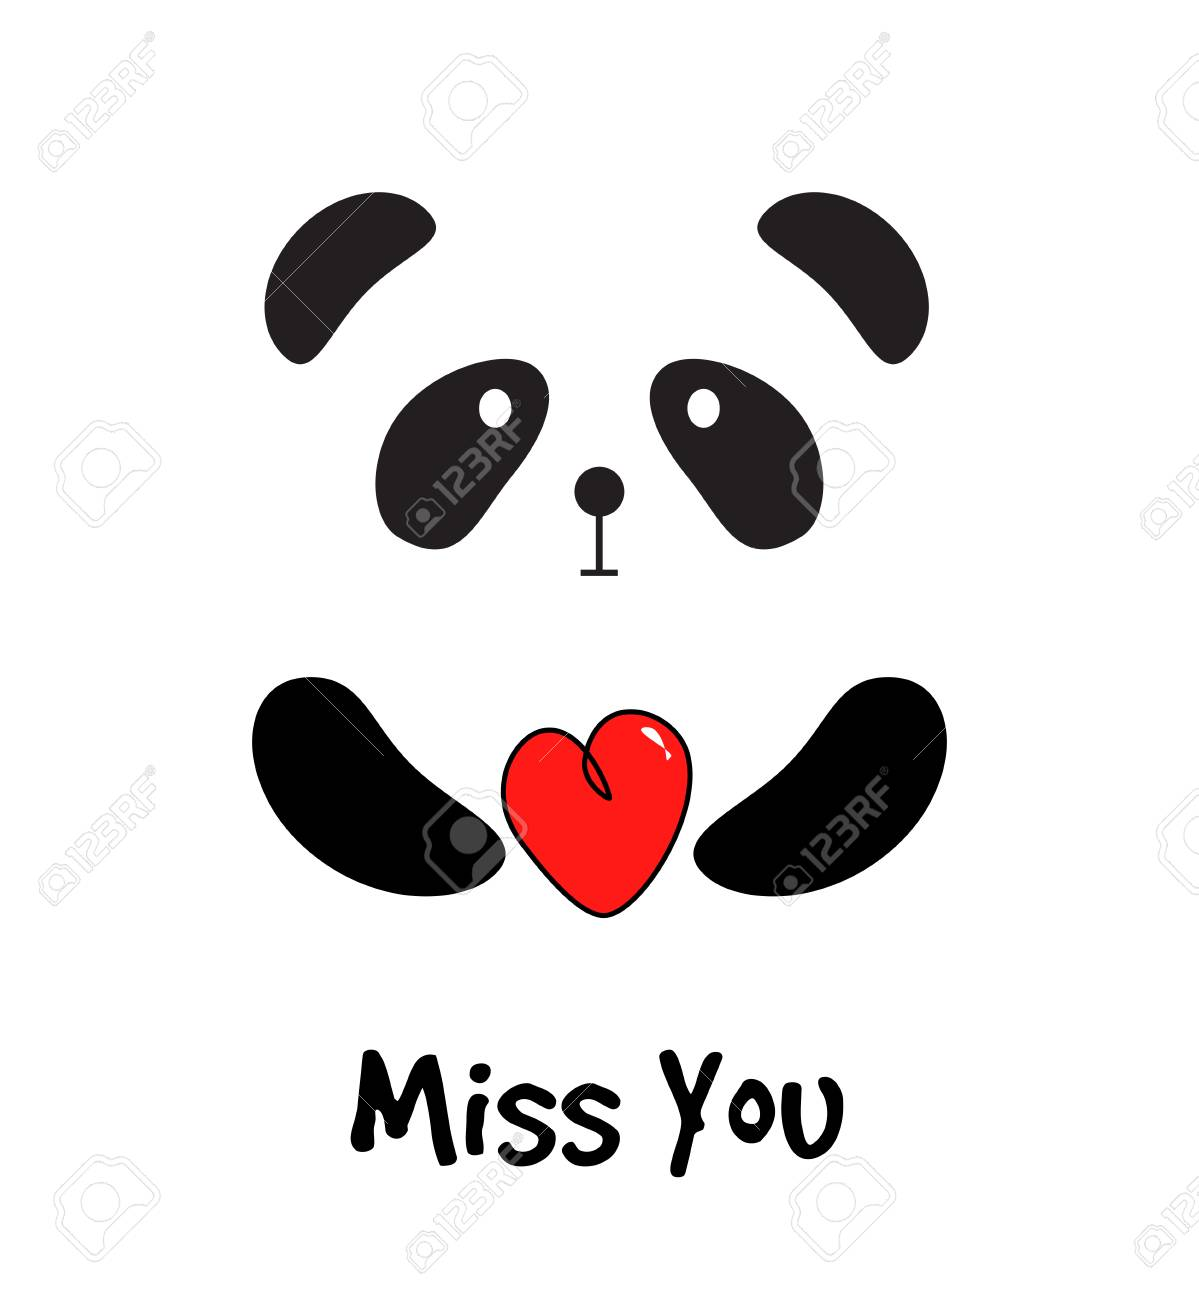 Cute Panda With Red Heart Miss You Card Royalty Free Cliparts